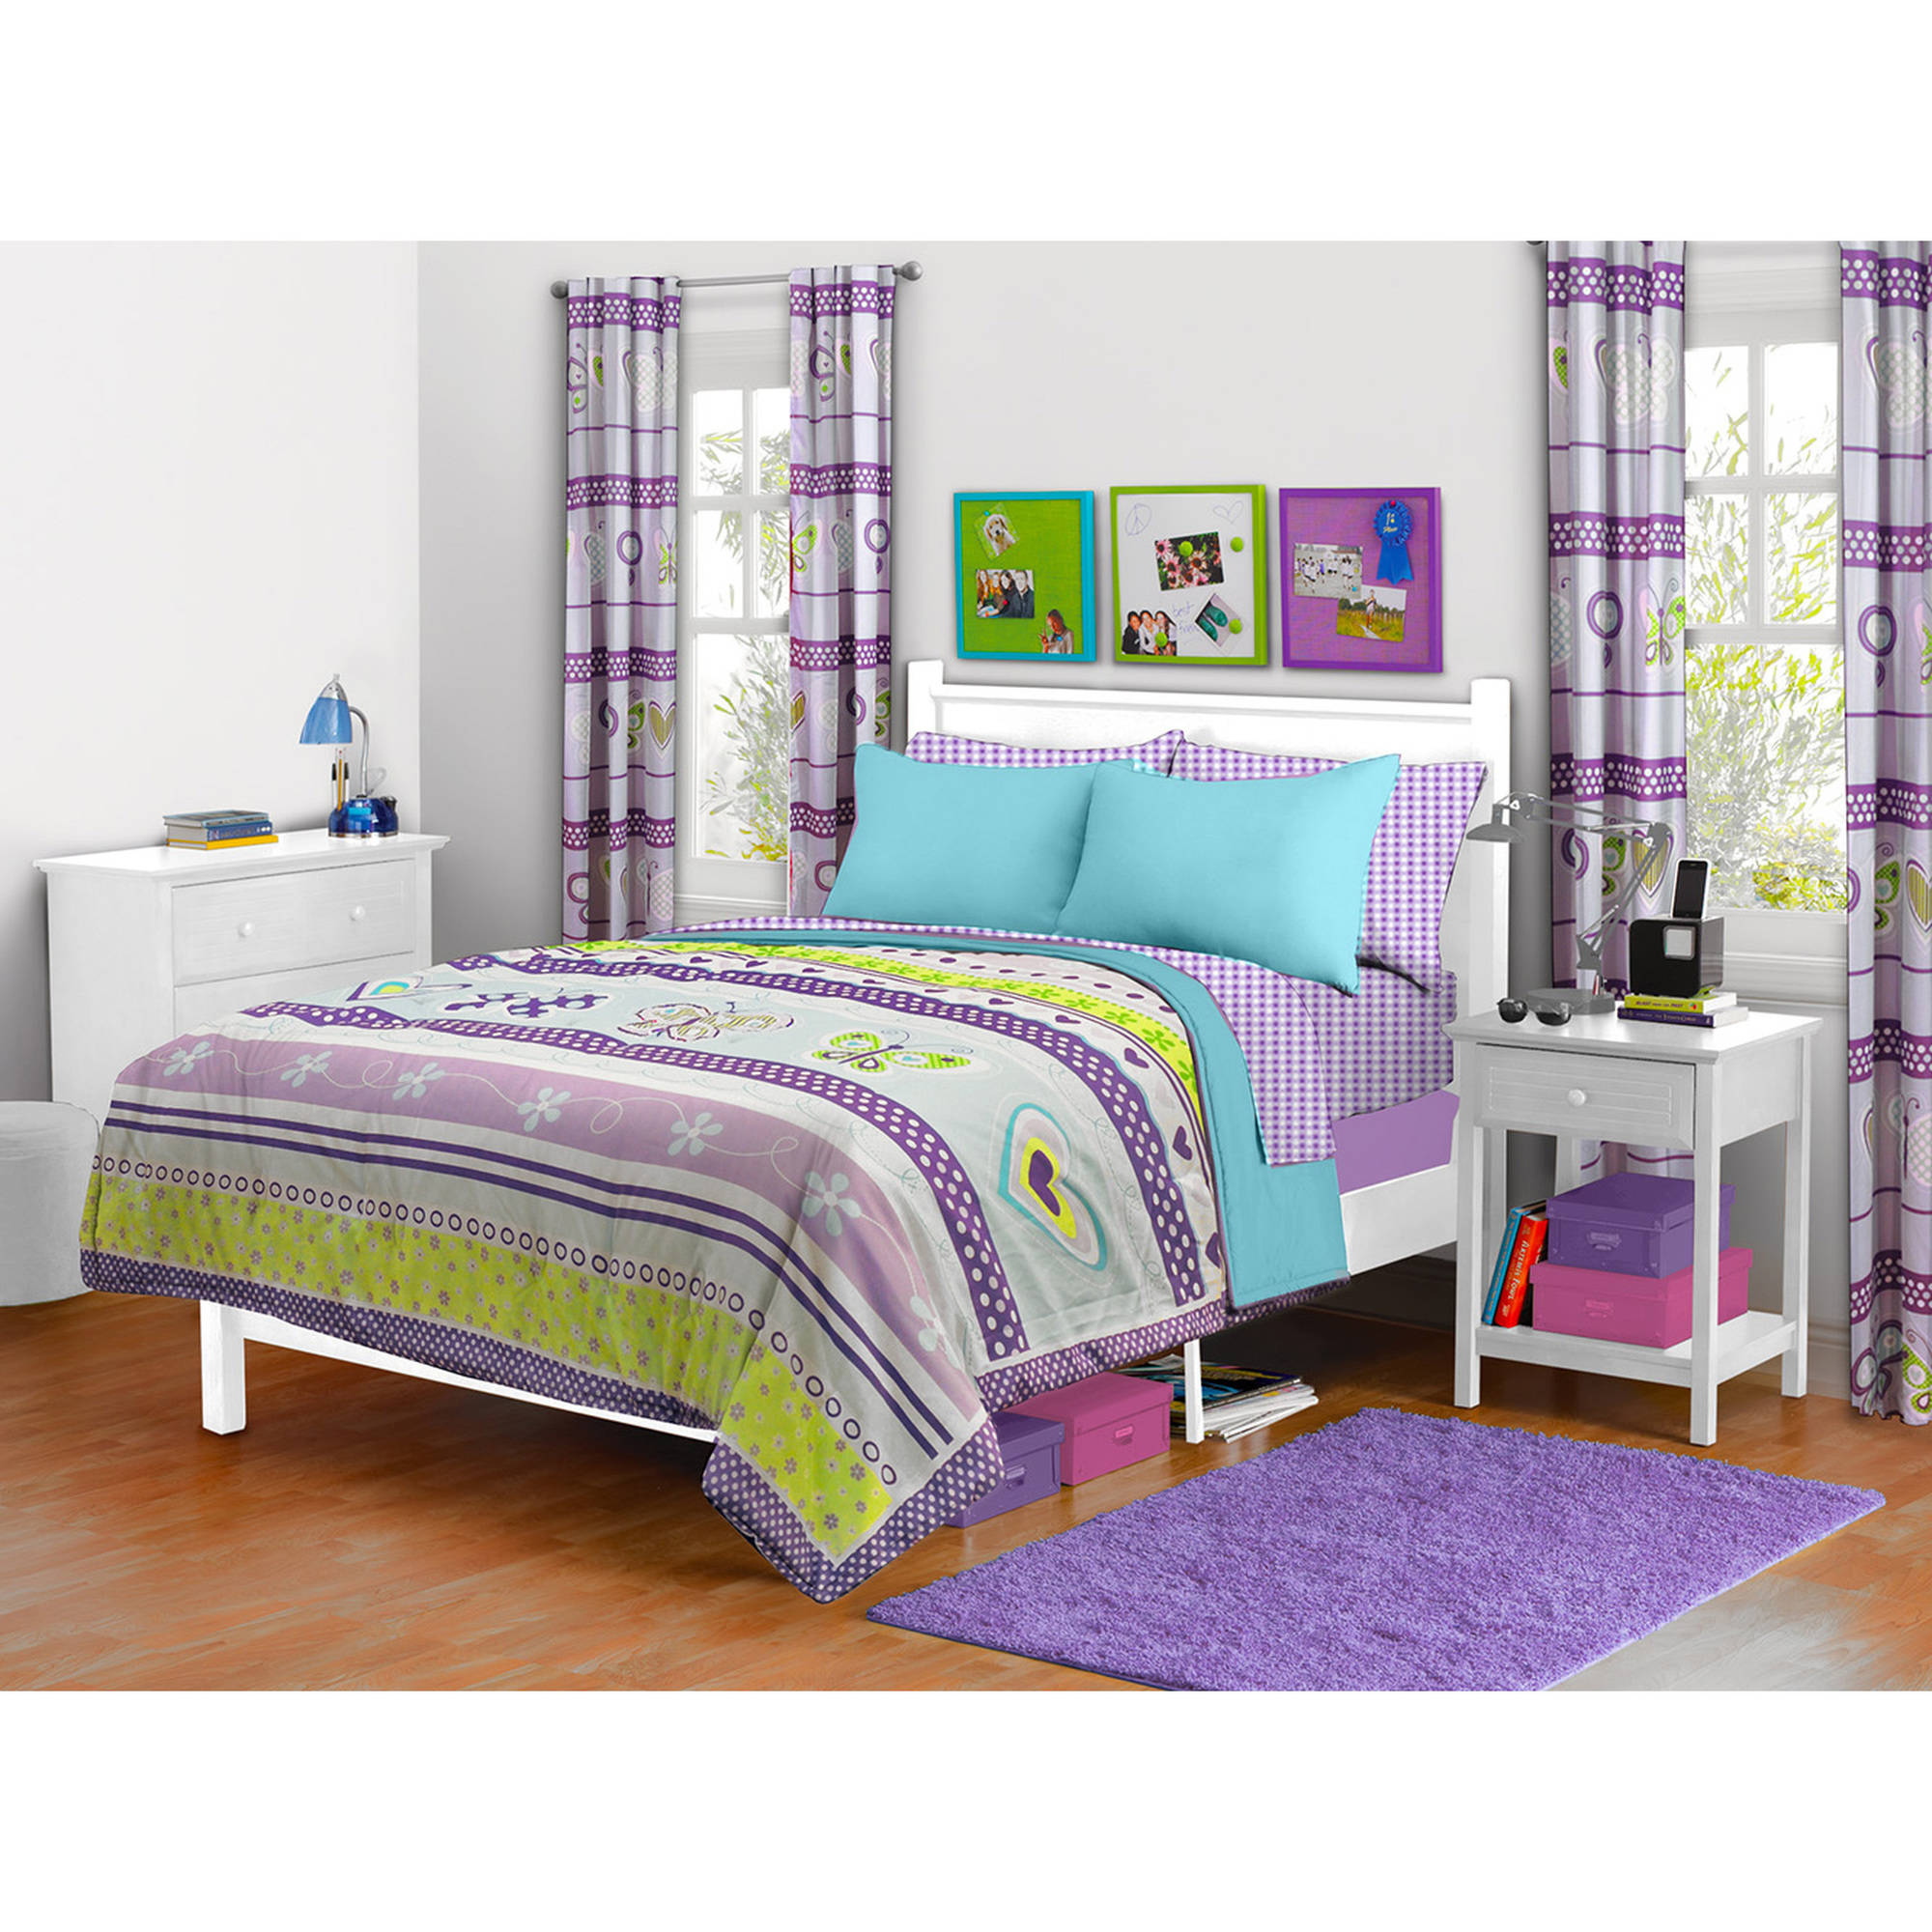 Mainstays Kids Lavender Butterfly Comforter, Twin/Full